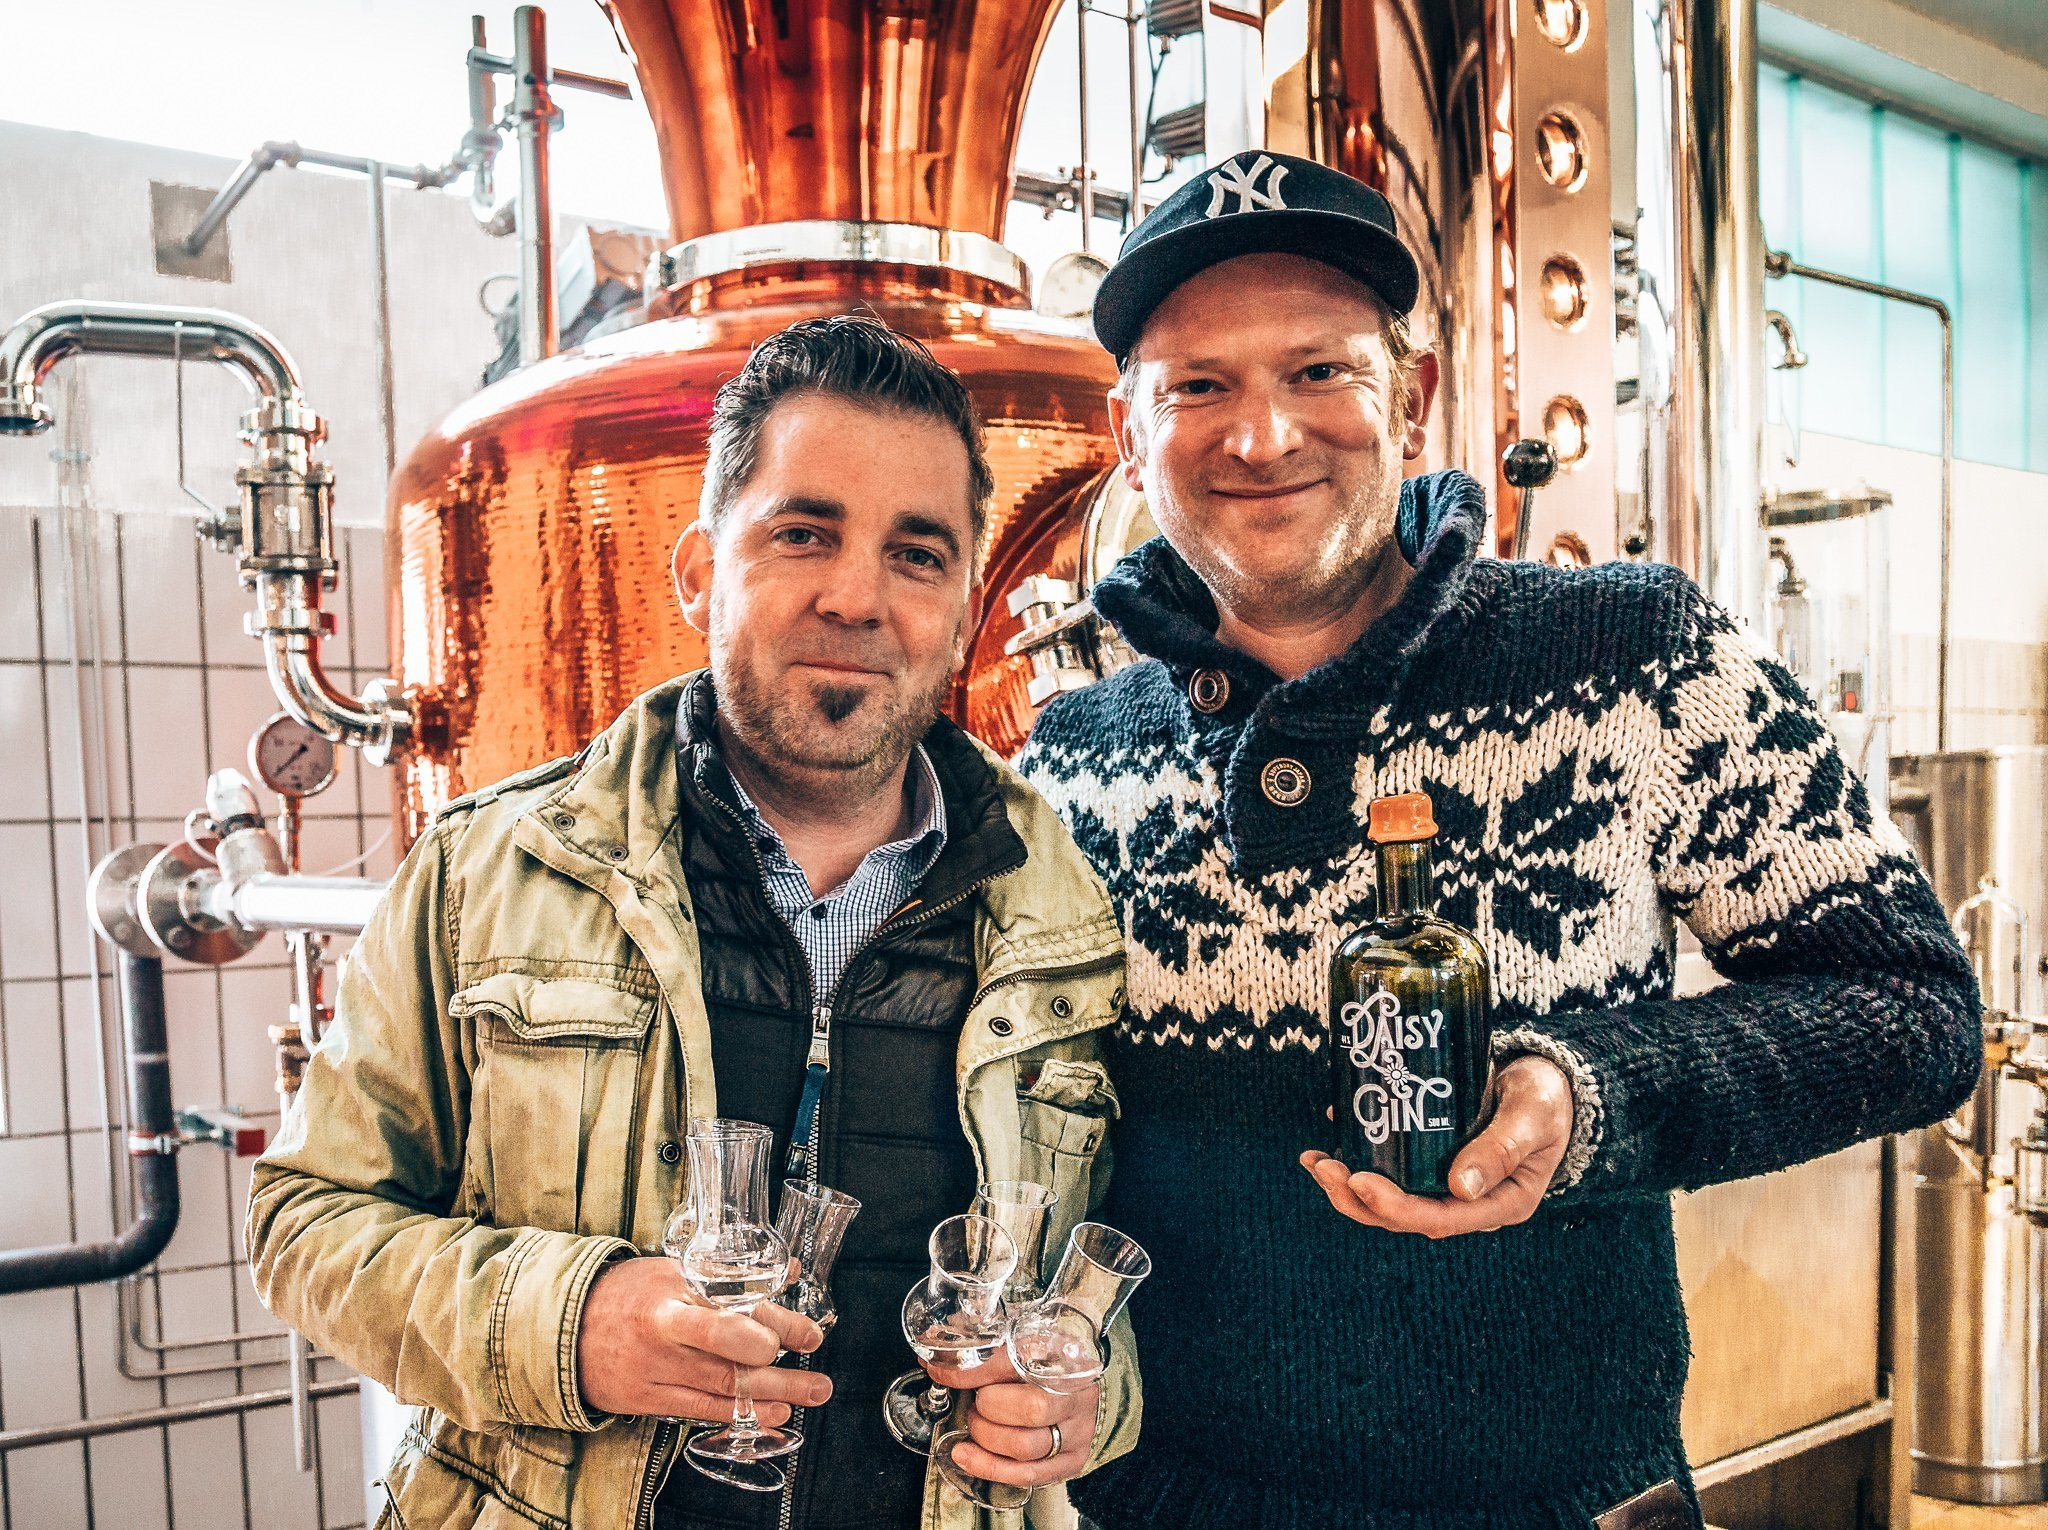 Makers van Daisy Gin, Alles over gin.